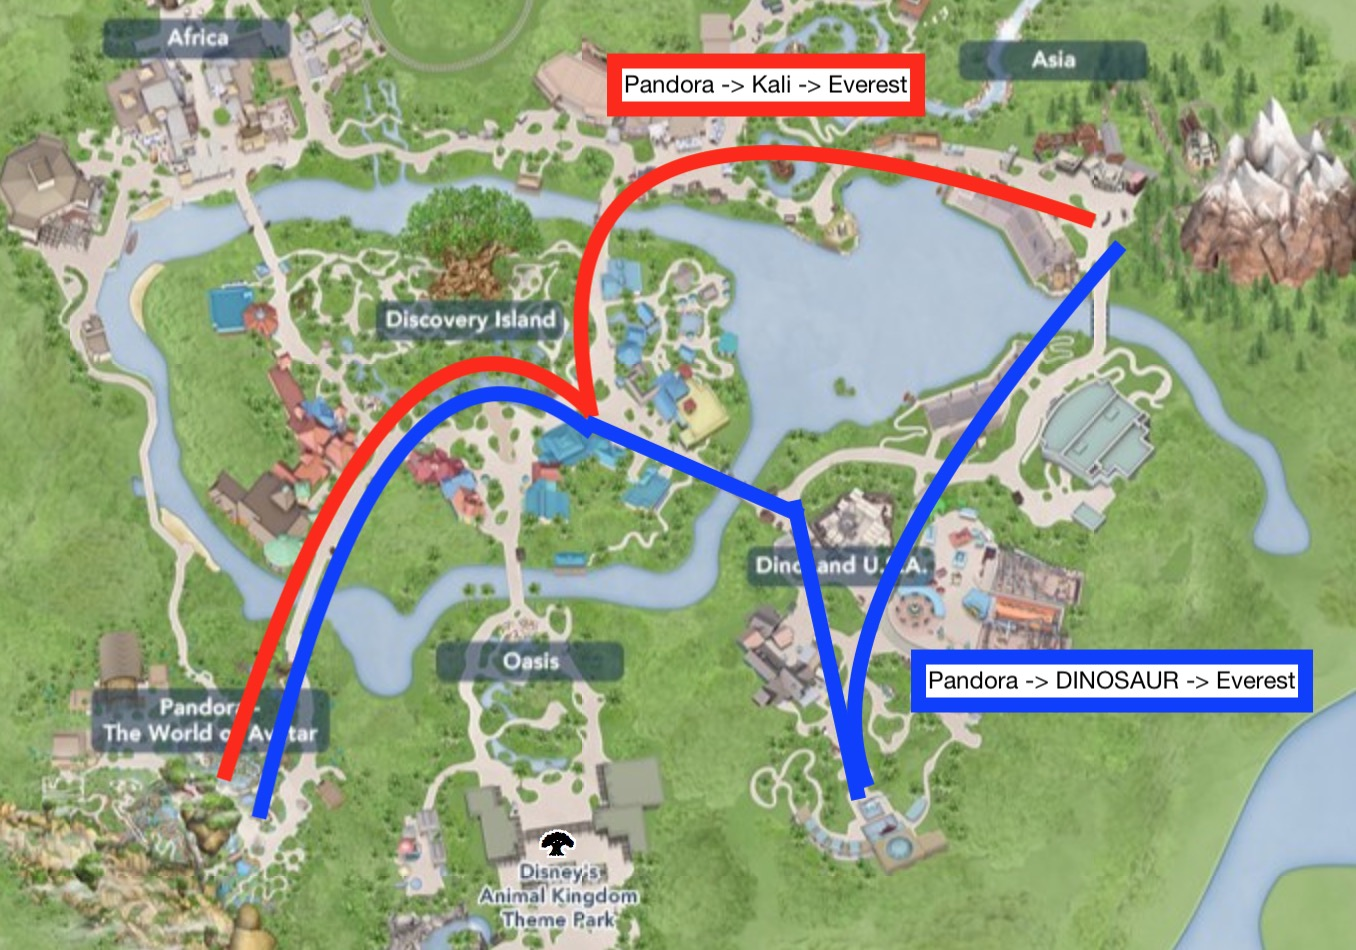 Your morning should take one of these two routes. Use your third Animal Kingdom Fastpass for the ride you skip.